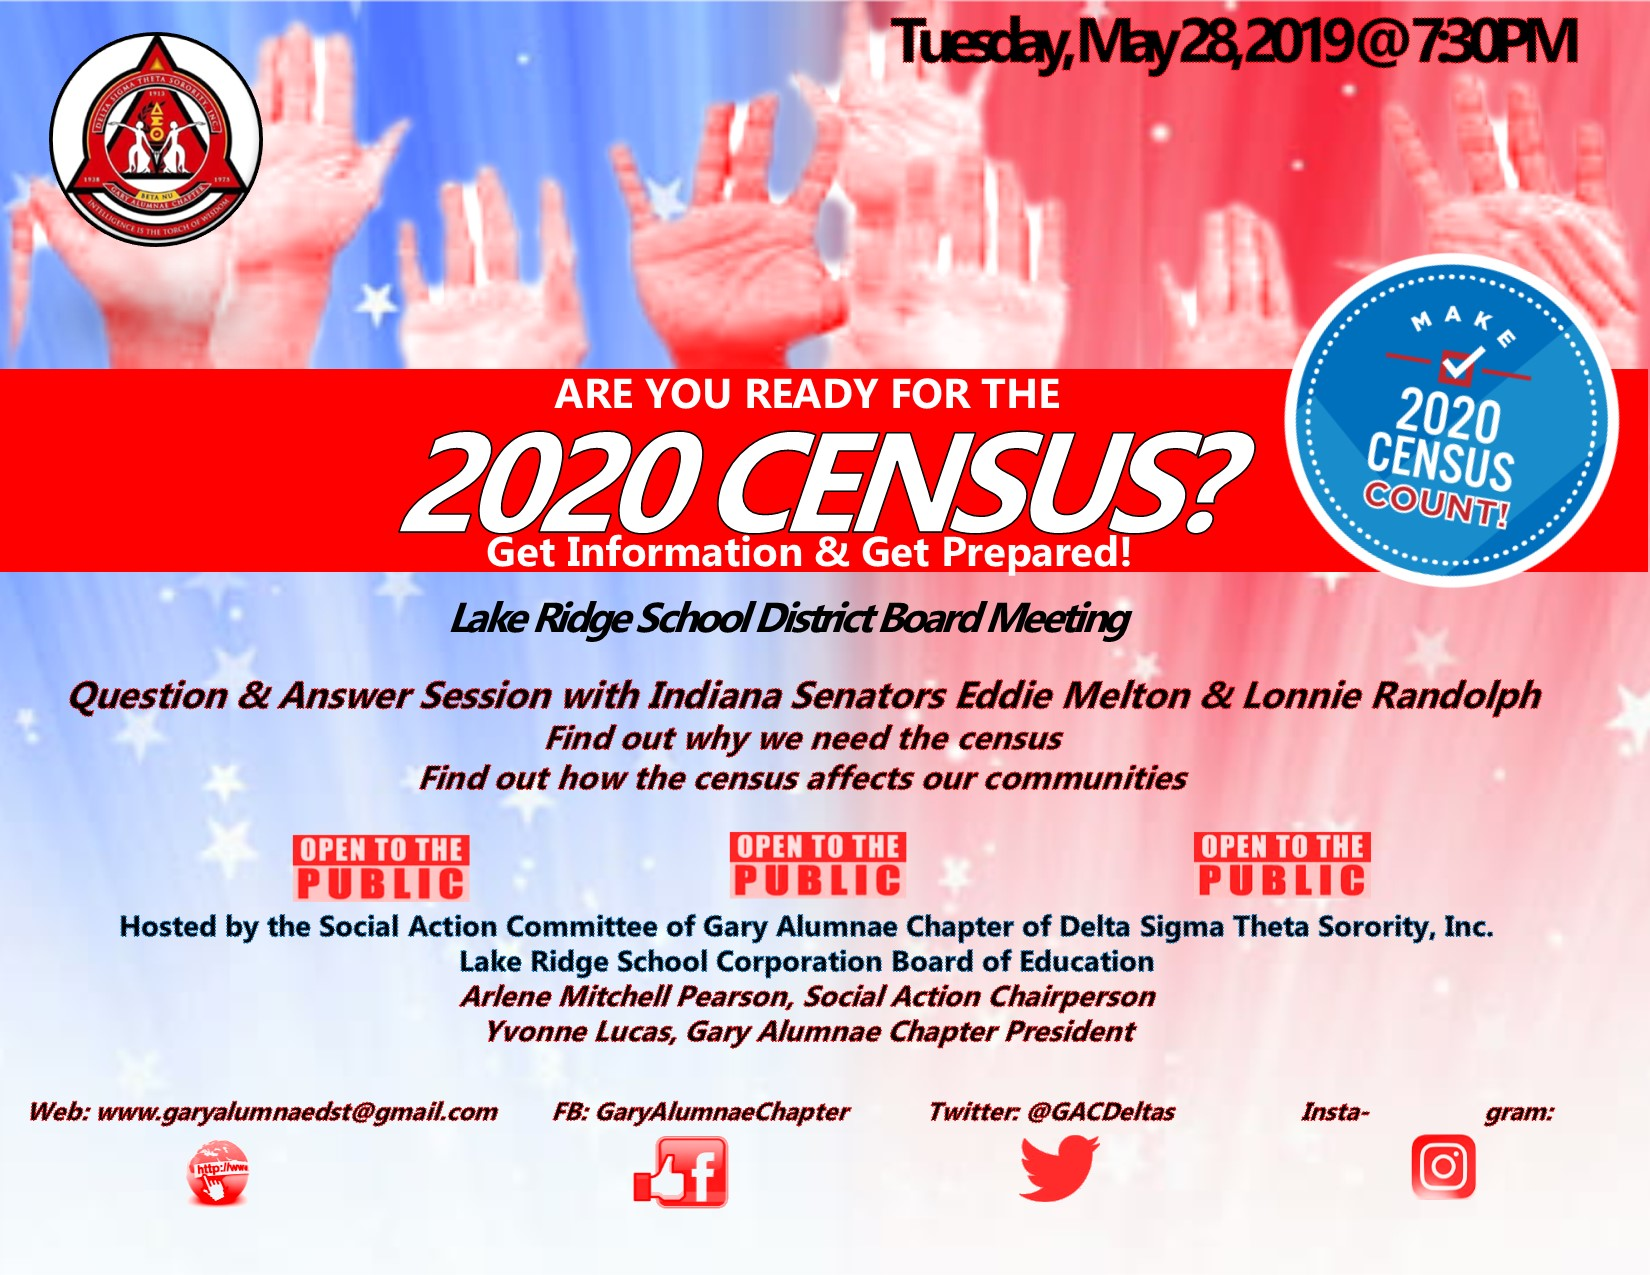 Are You Ready for the 2020 U.S. Census?